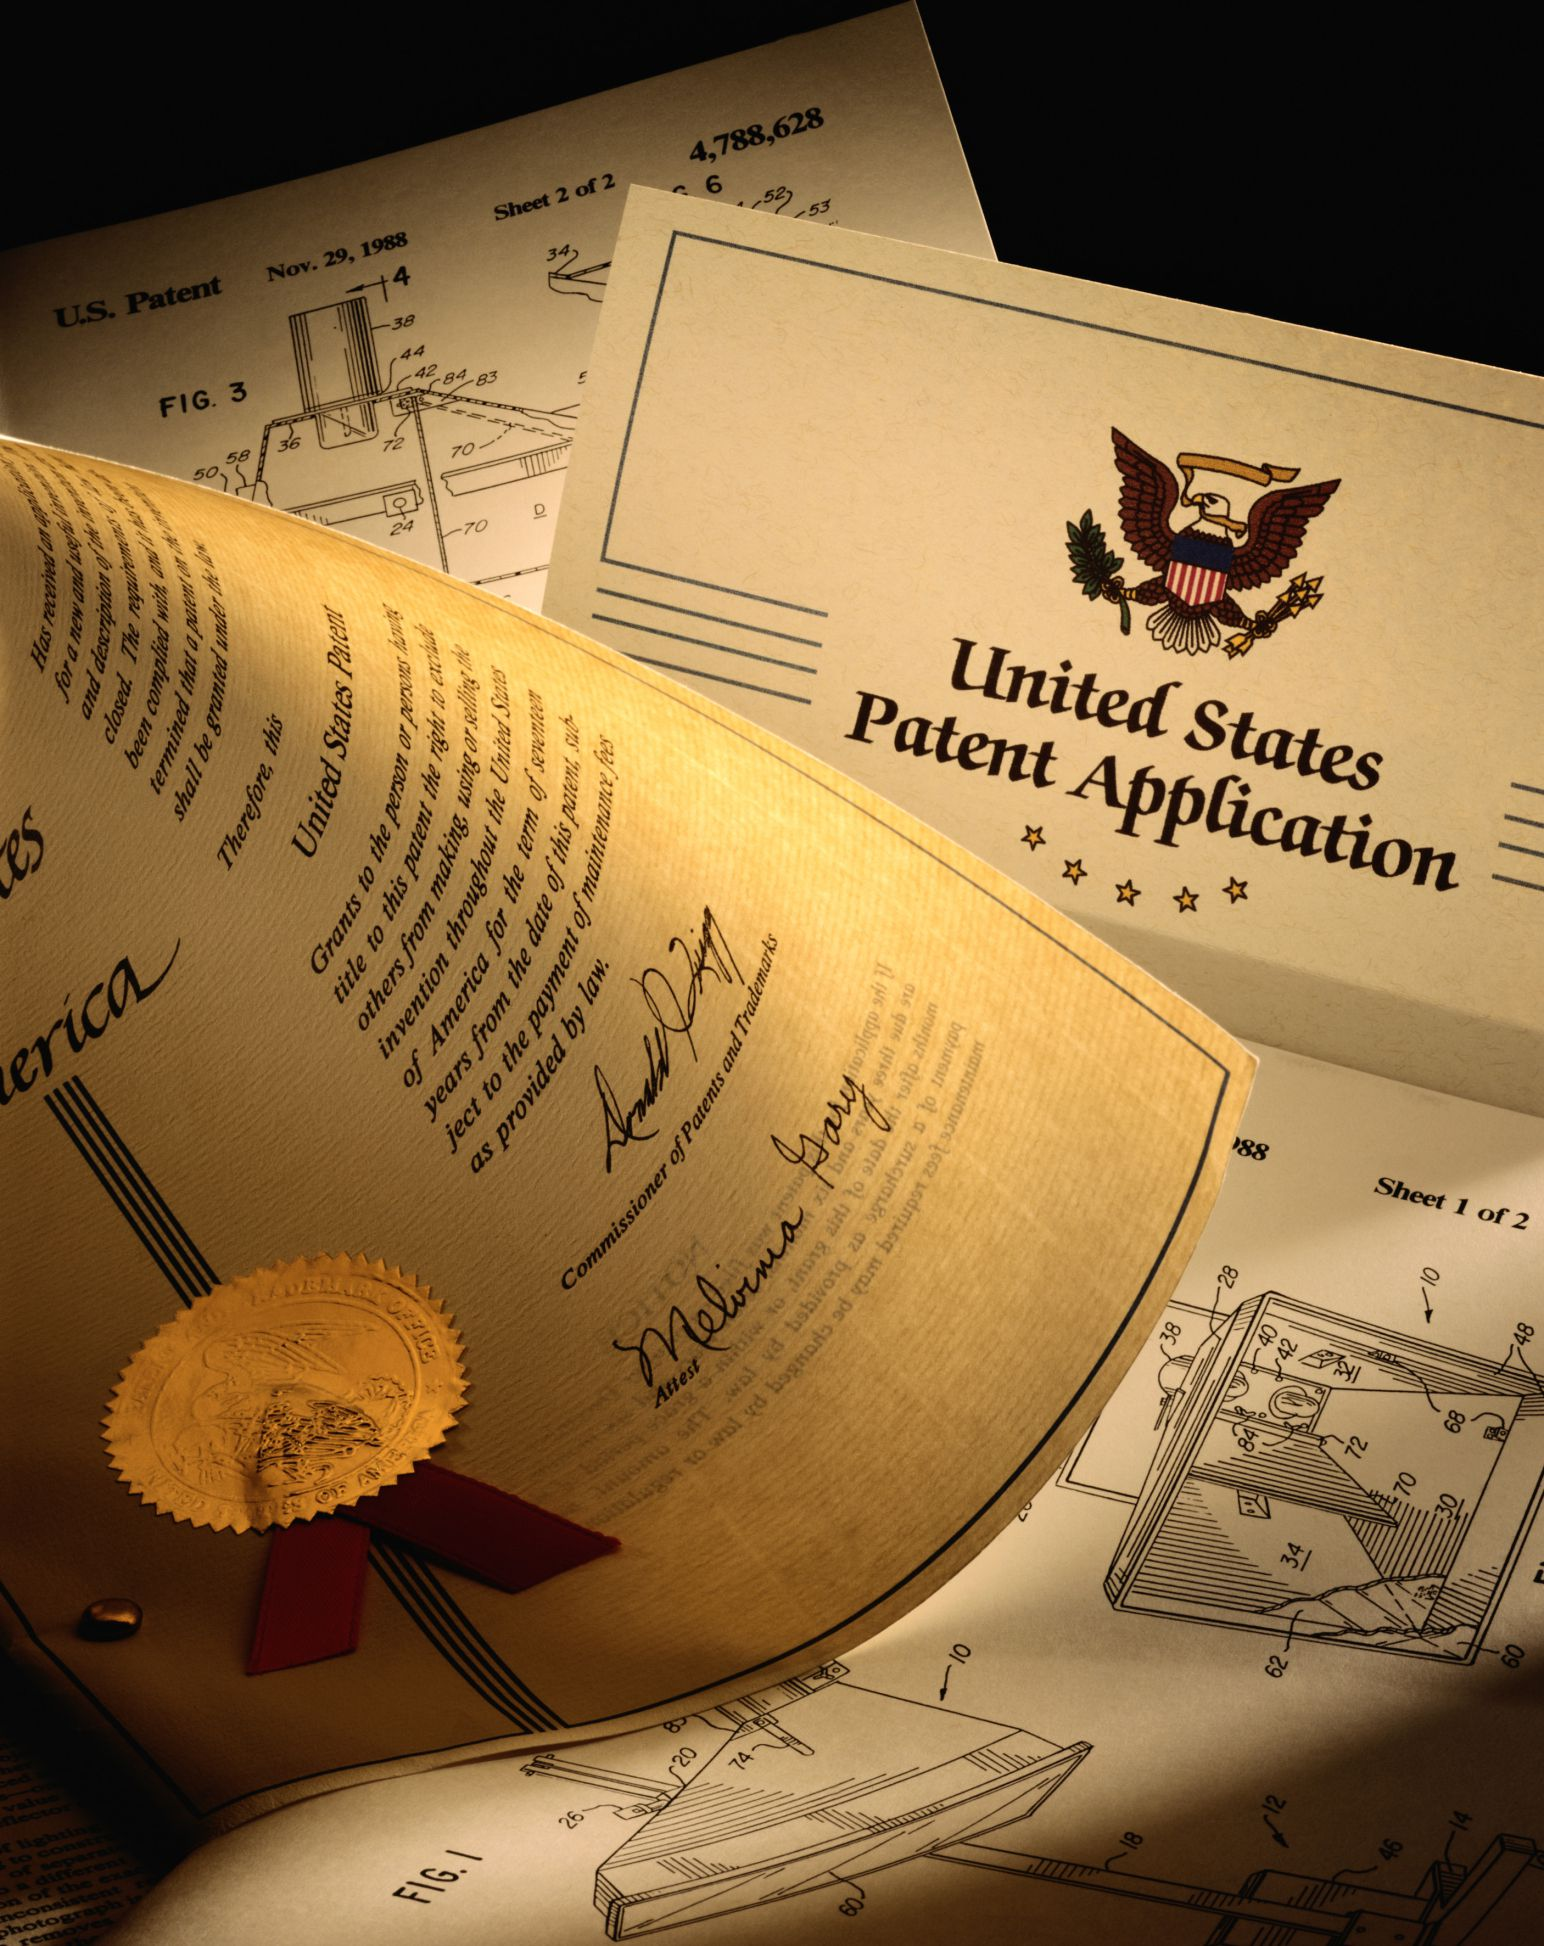 How to File a Utility Patent Application